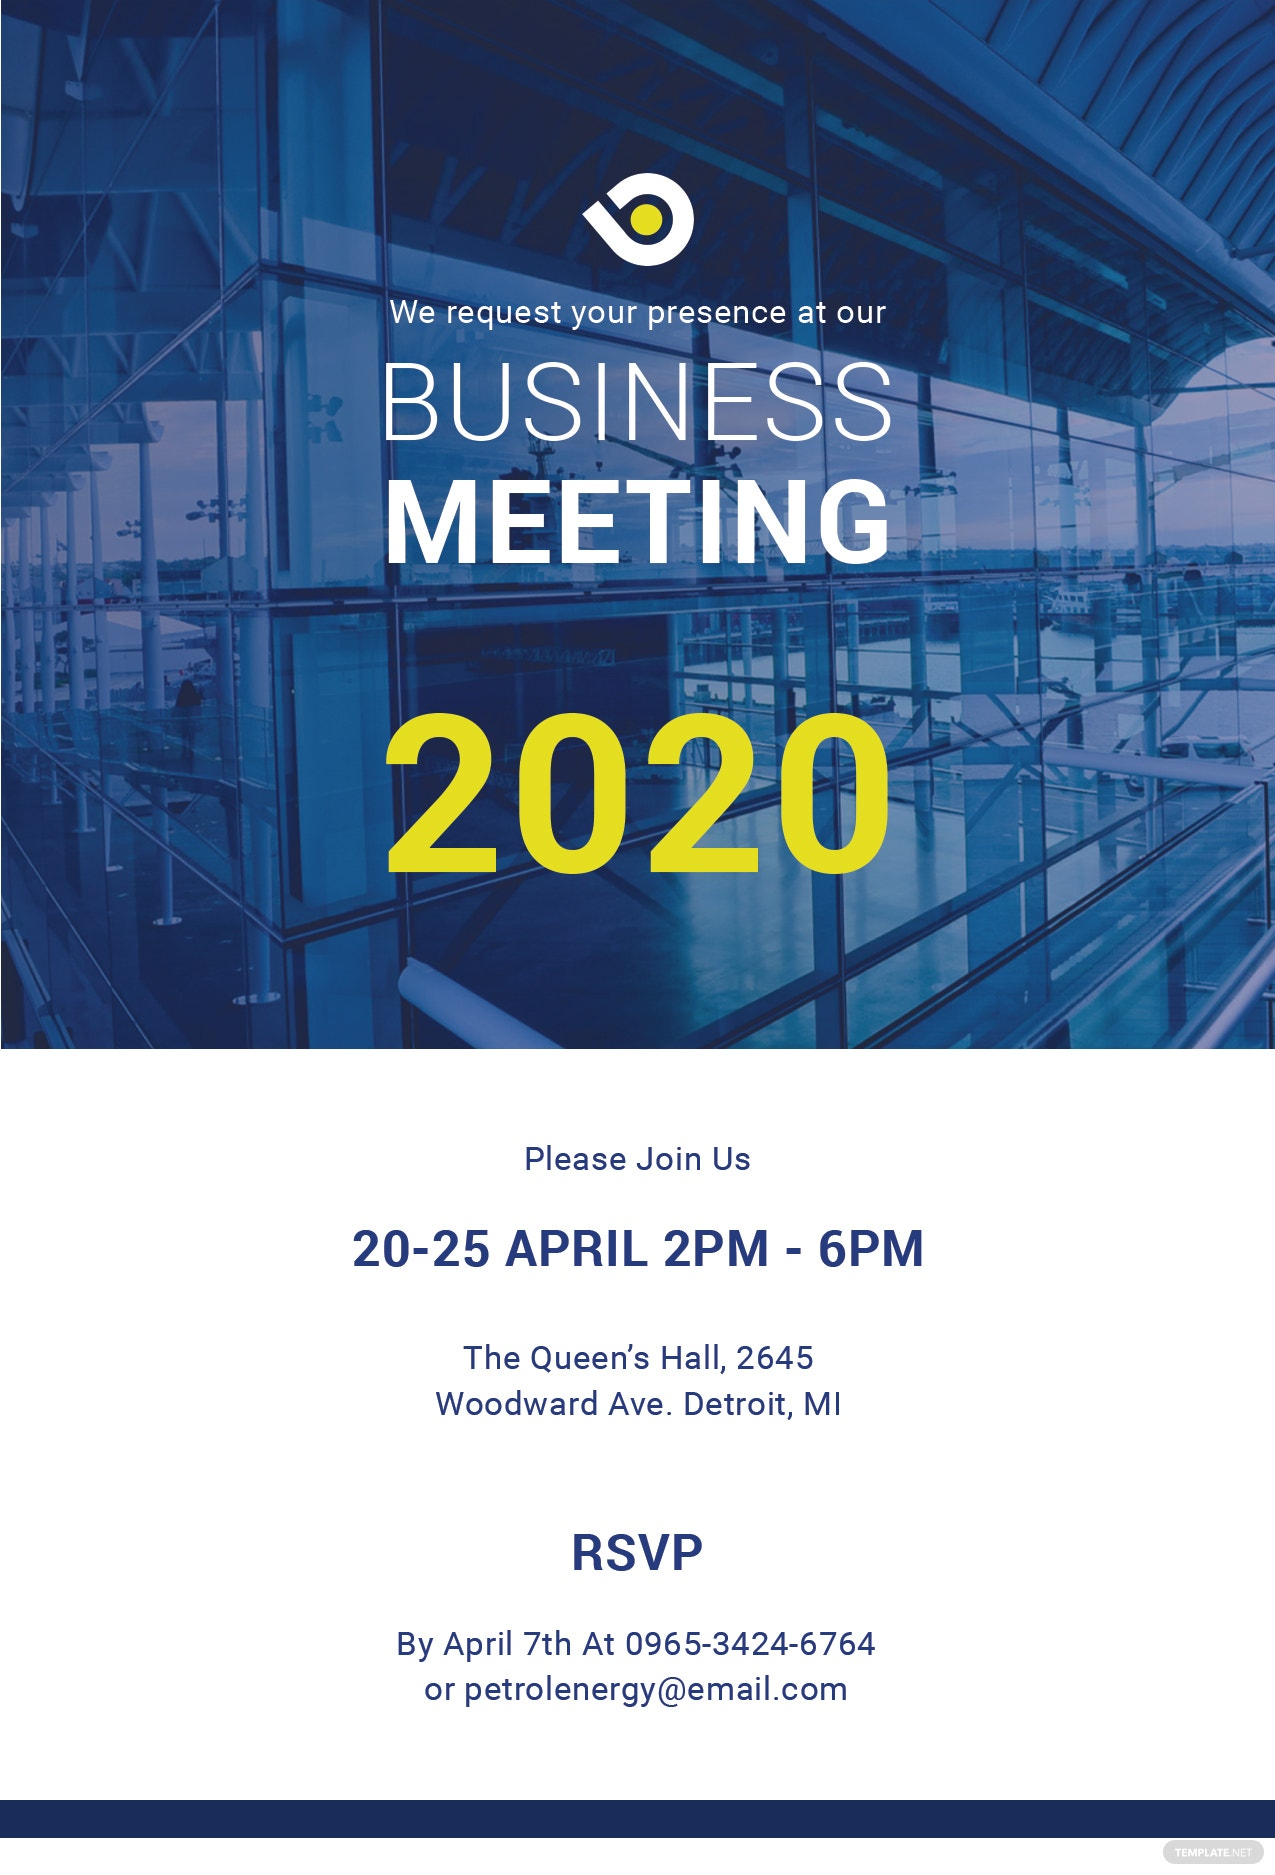 Free Business Meeting Invitation Template in PSD, MS Word ...